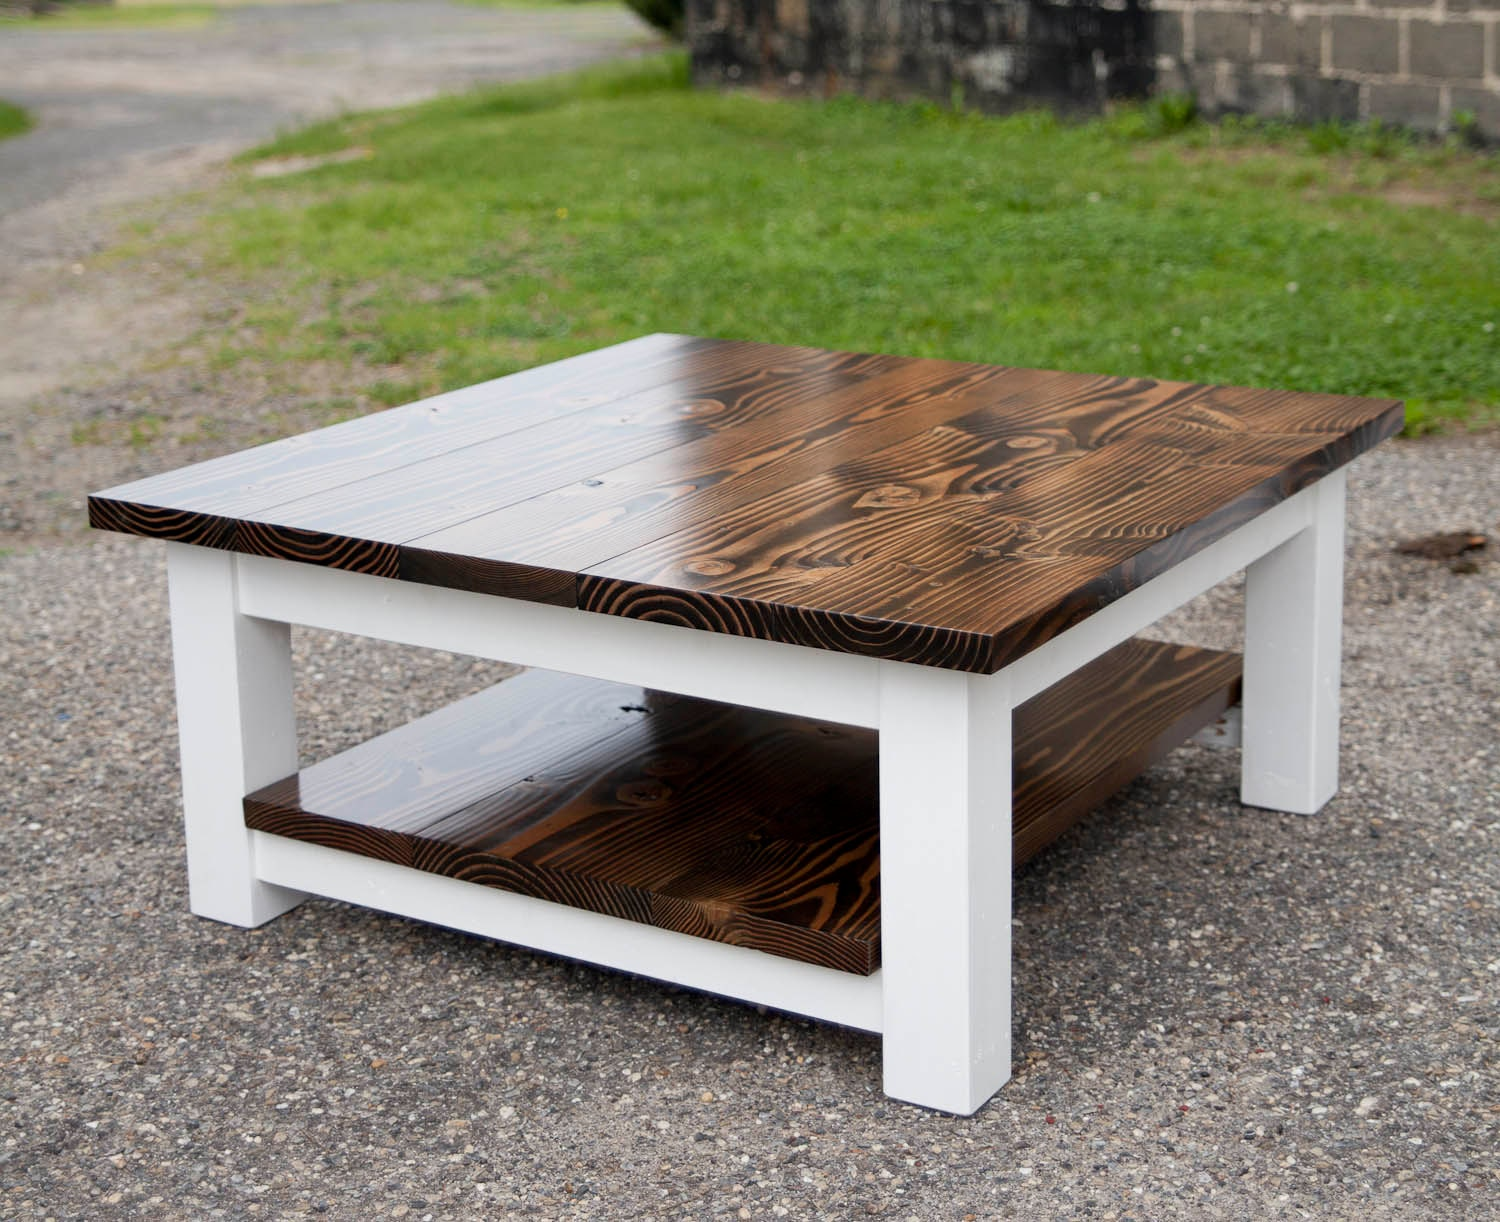 Design Rustic Coffee Table farmhouse coffee table rustic solid wood square built to